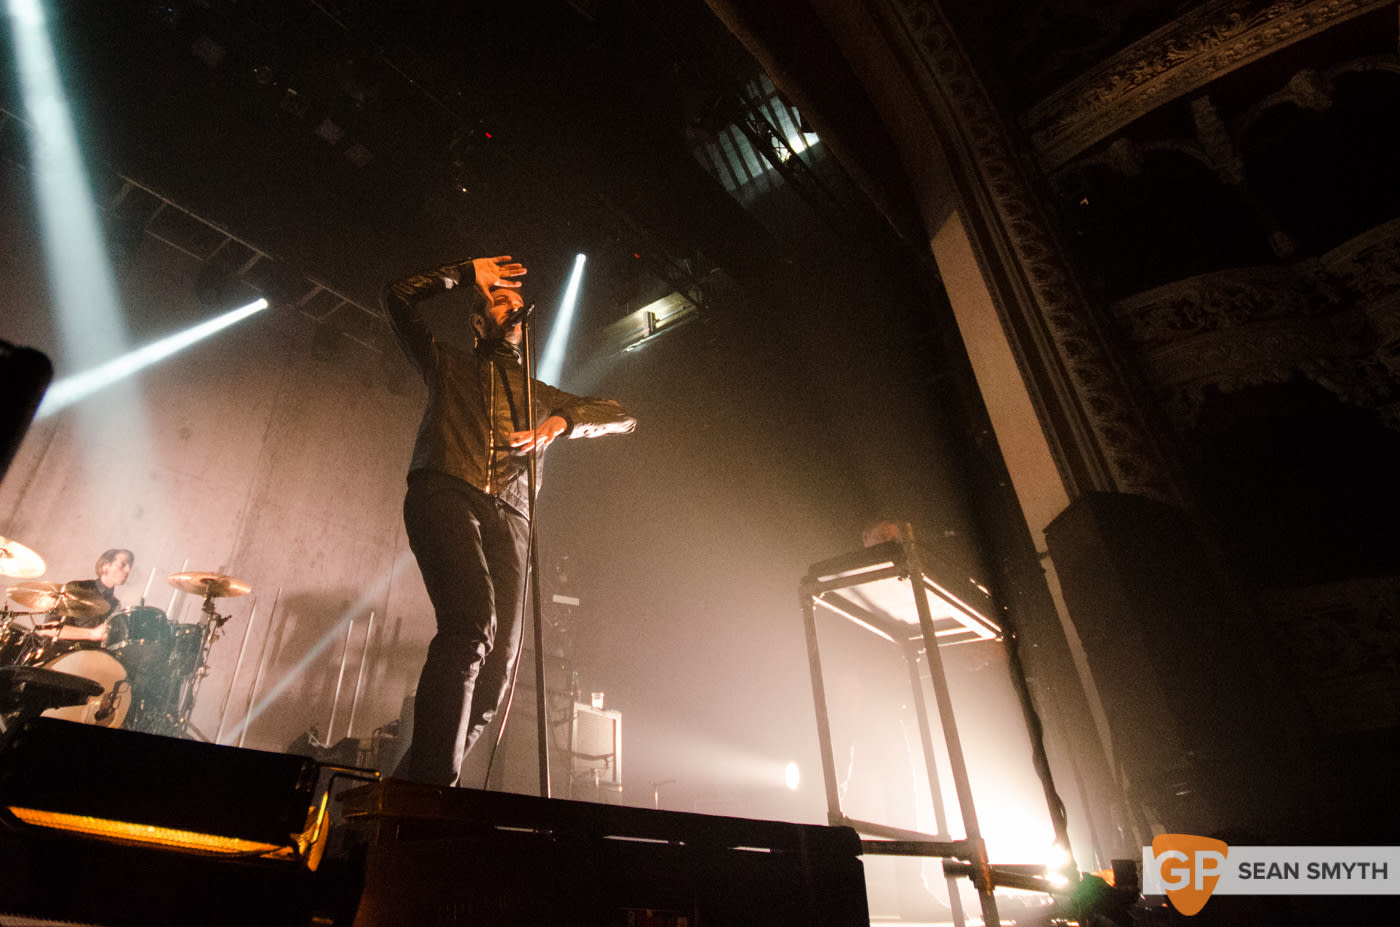 editors-at-the-olympia-theatre-by-sean-smyth-10-10-15-12-of-28_21902250360_o